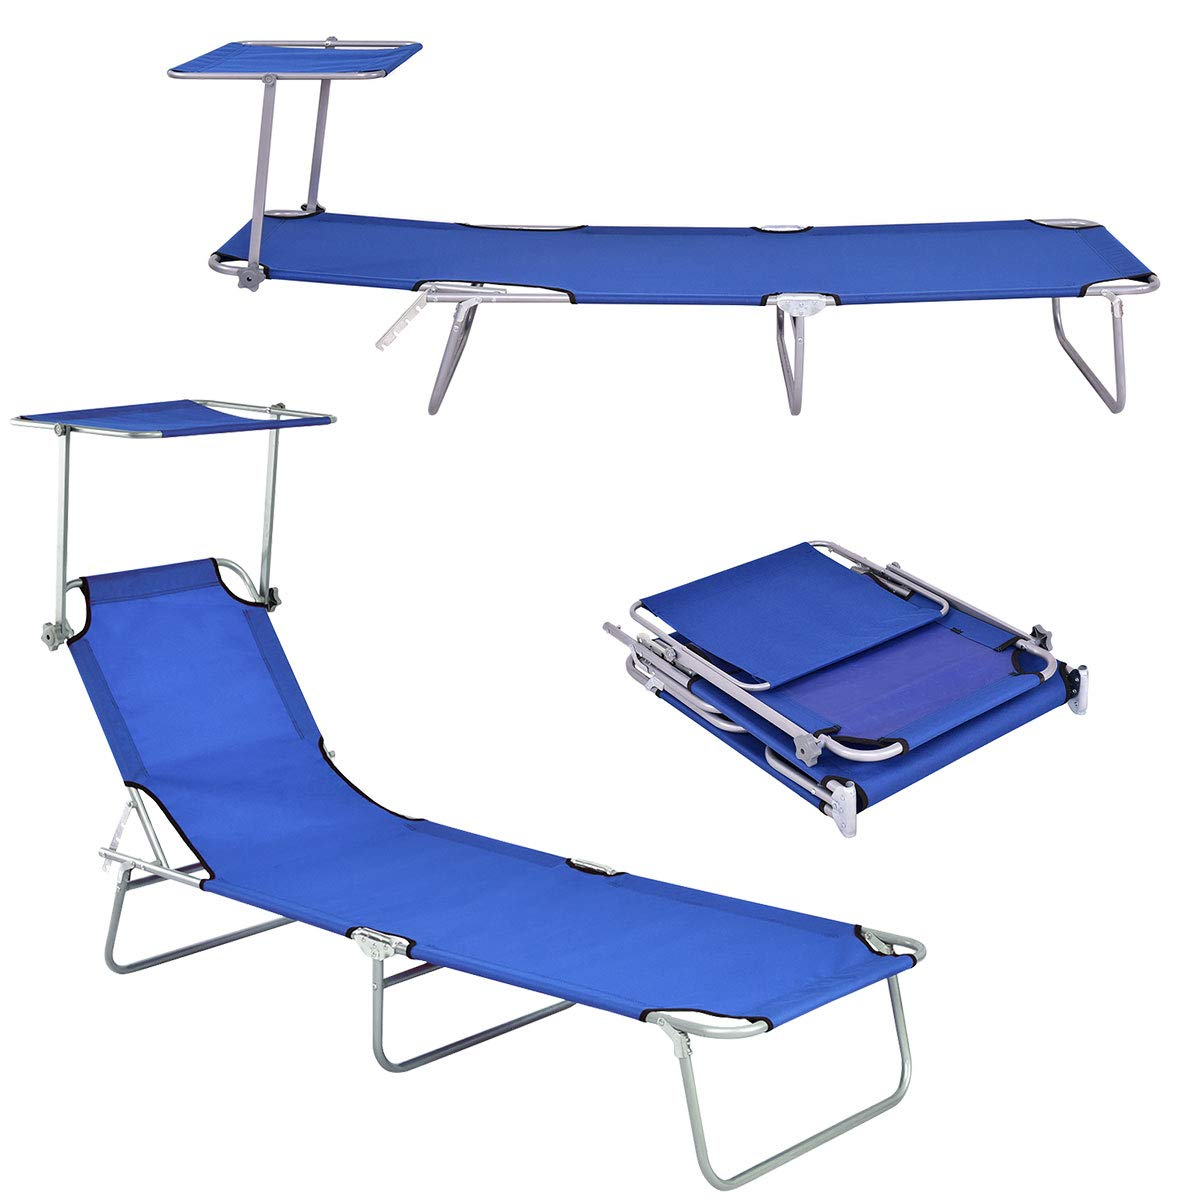 Giantex Lounge Chaise Foldable and Adjustable 5 Reclining Positions W Sun Shade for Garden Beach Patio Pool Seat Outdoor Portable Recliner Lounge Chair Navy